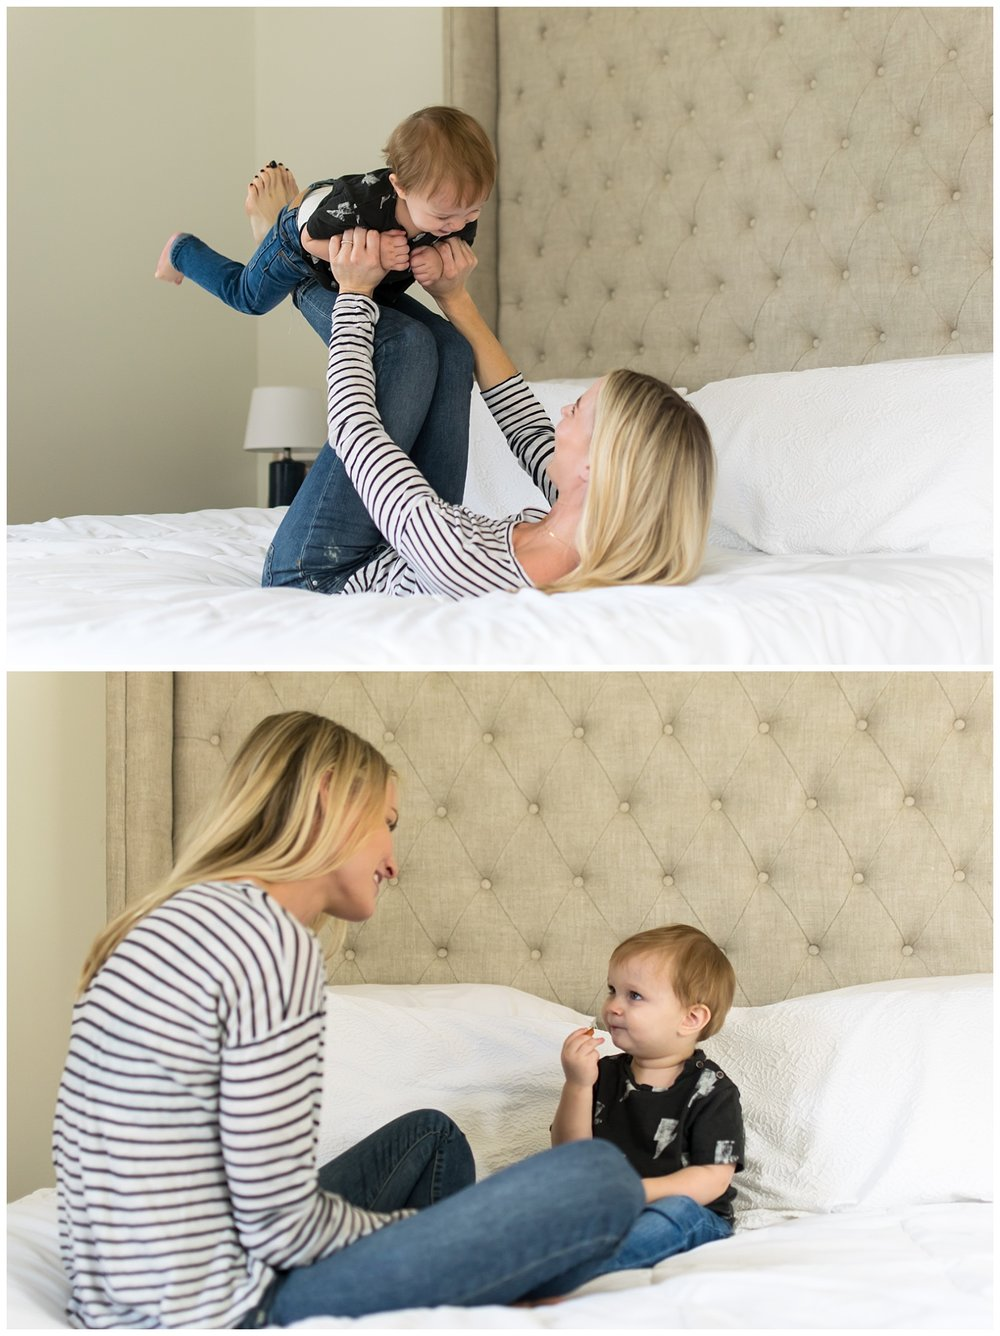 these are images of a mother and her toddler son sitting in the master bedroom playing on the bed. the images were taken during a lifestyle in home session in atlanta, georgia.